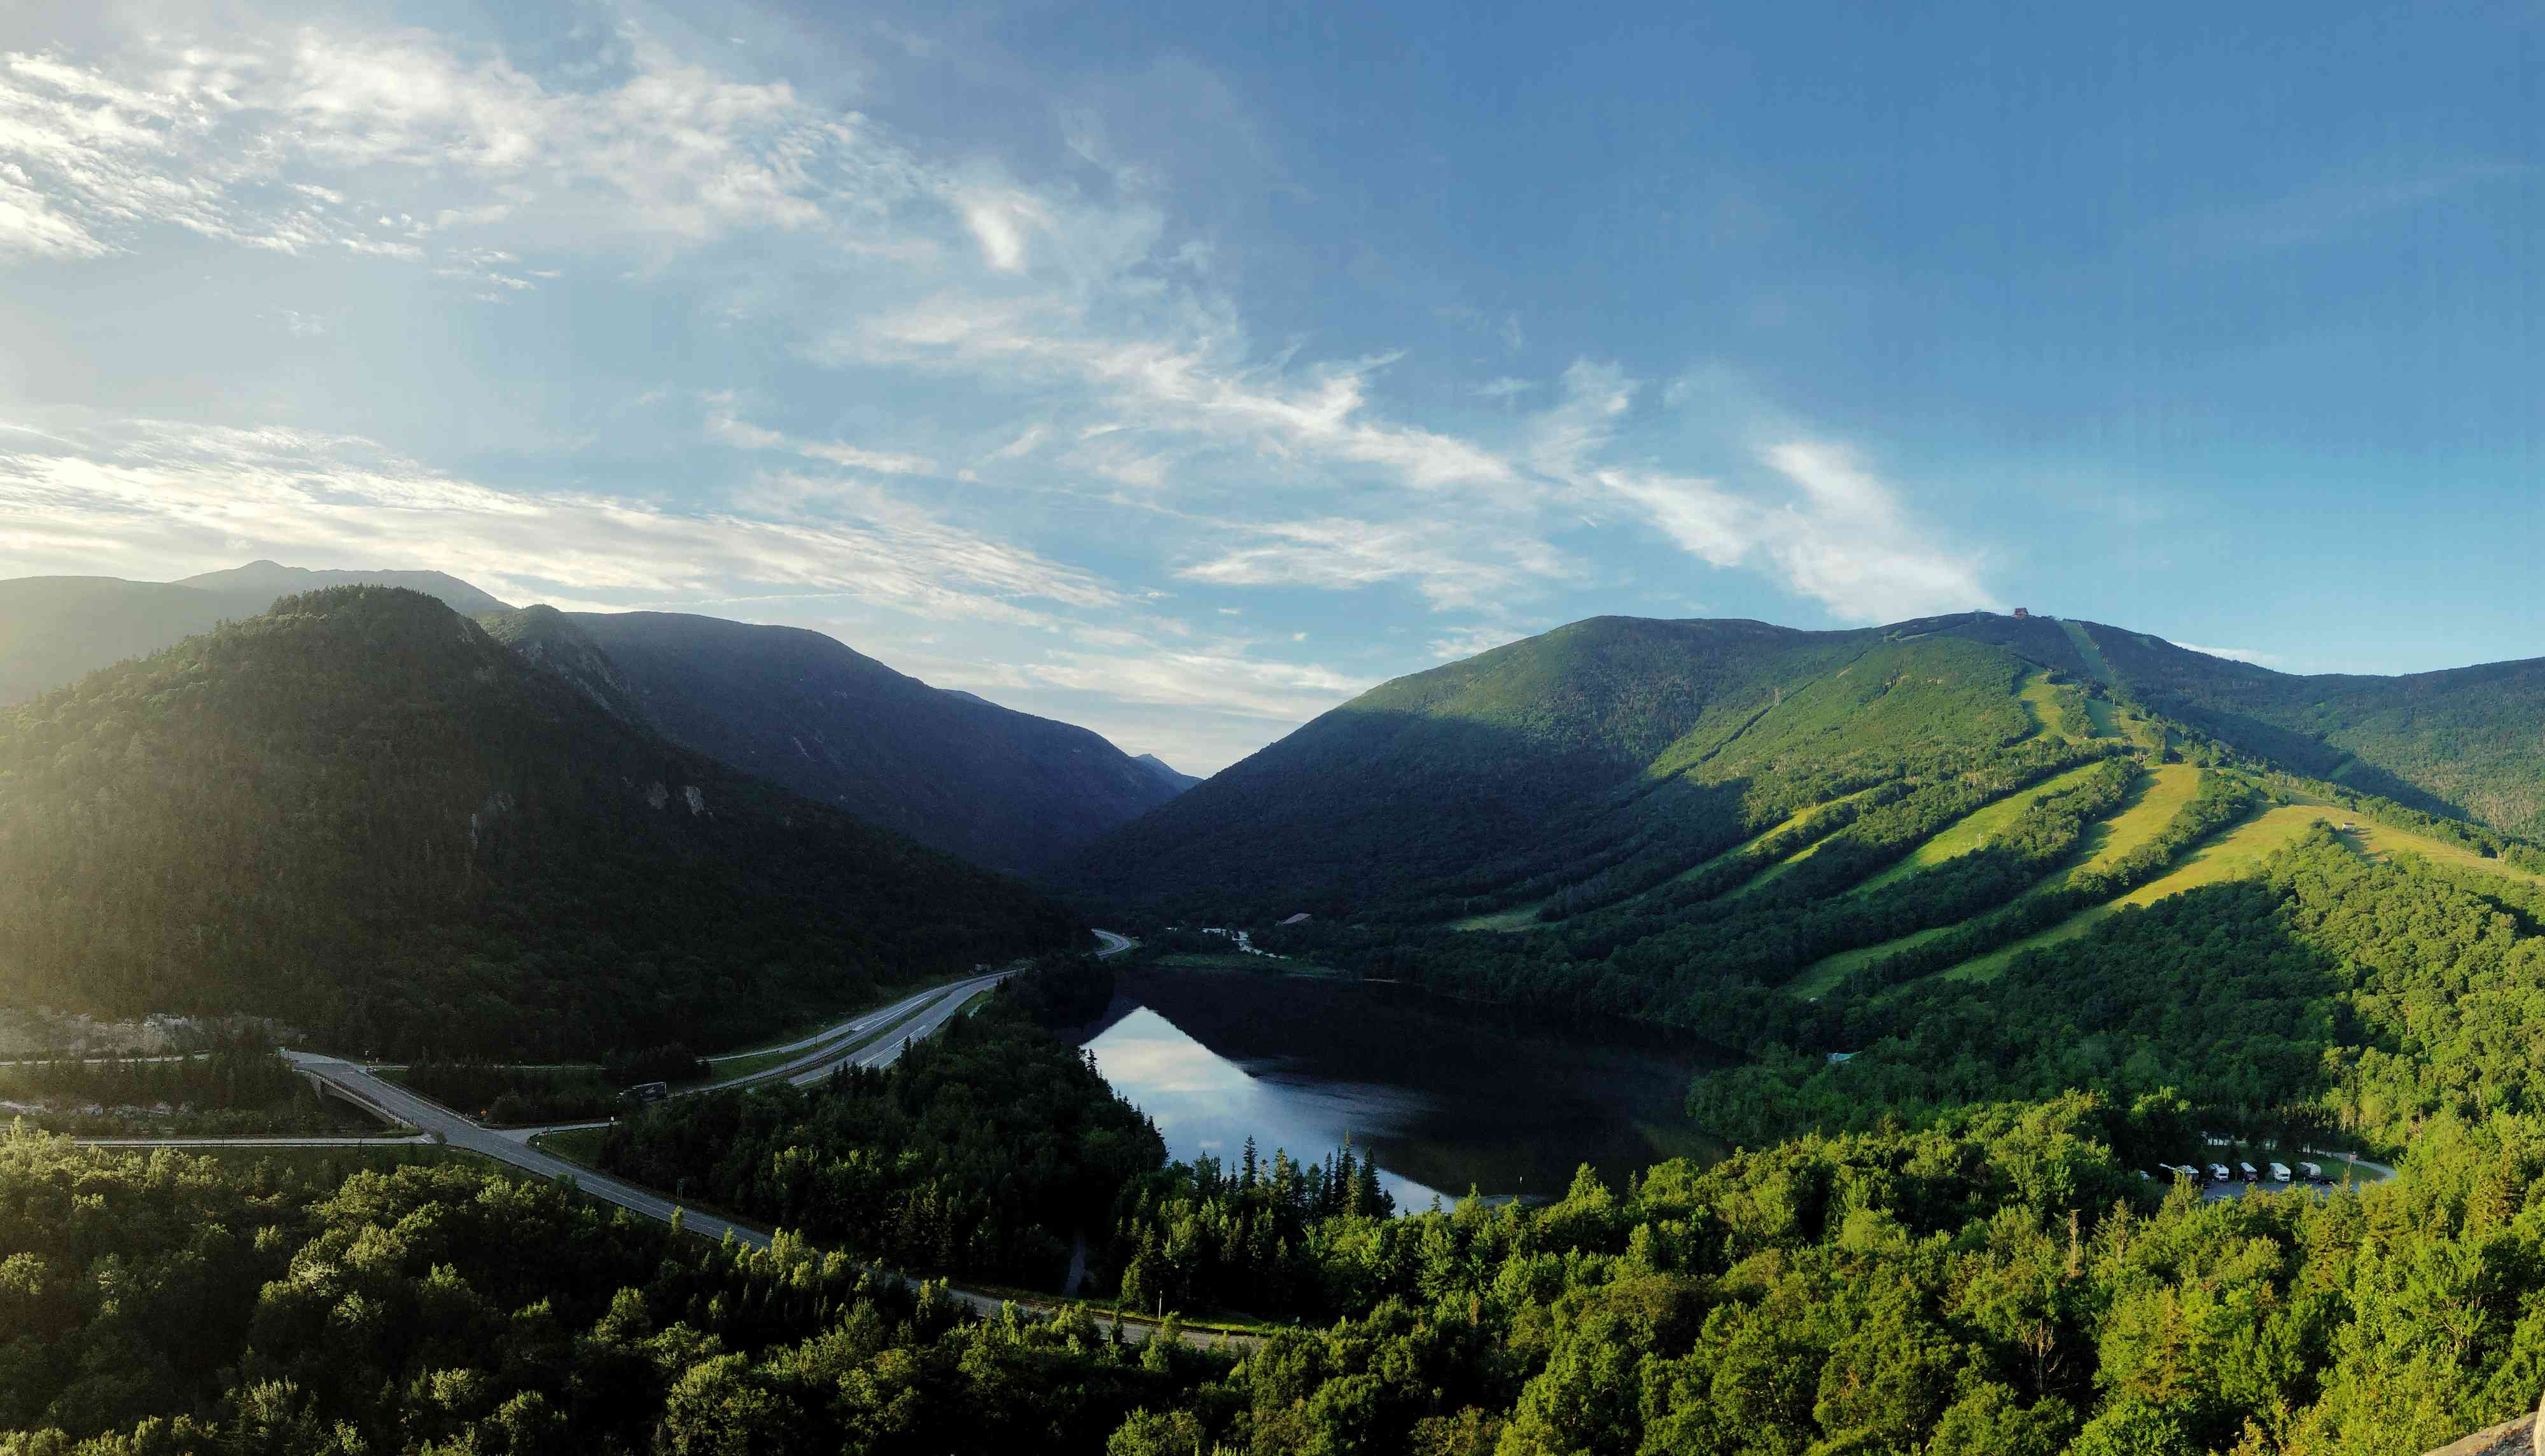 A view of Franconia Notch State Park from Artist's Bluff lookout in Franconia, New Hampshire USA during summer